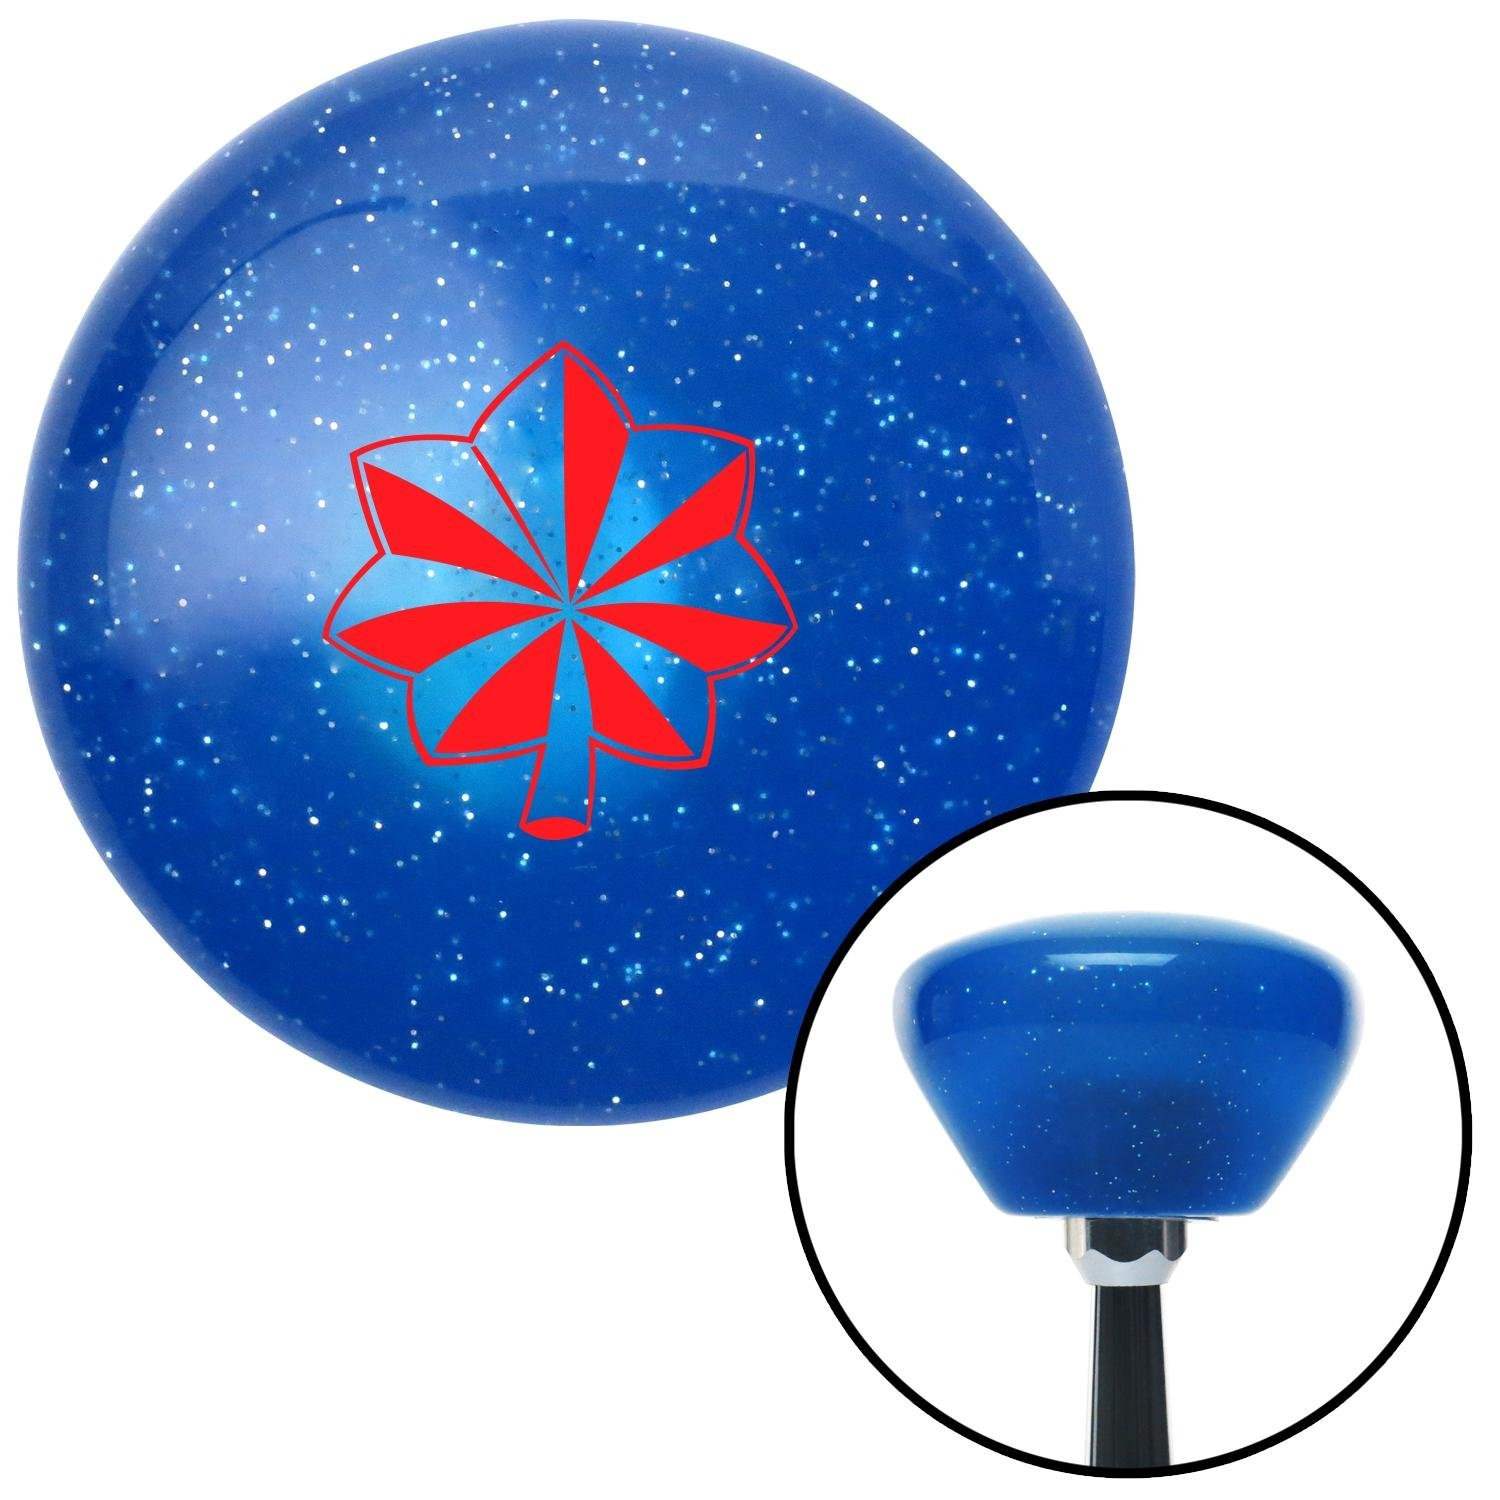 American Shifter 190174 Blue Retro Metal Flake Shift Knob with M16 x 1.5 Insert Red Officer 04 and 05